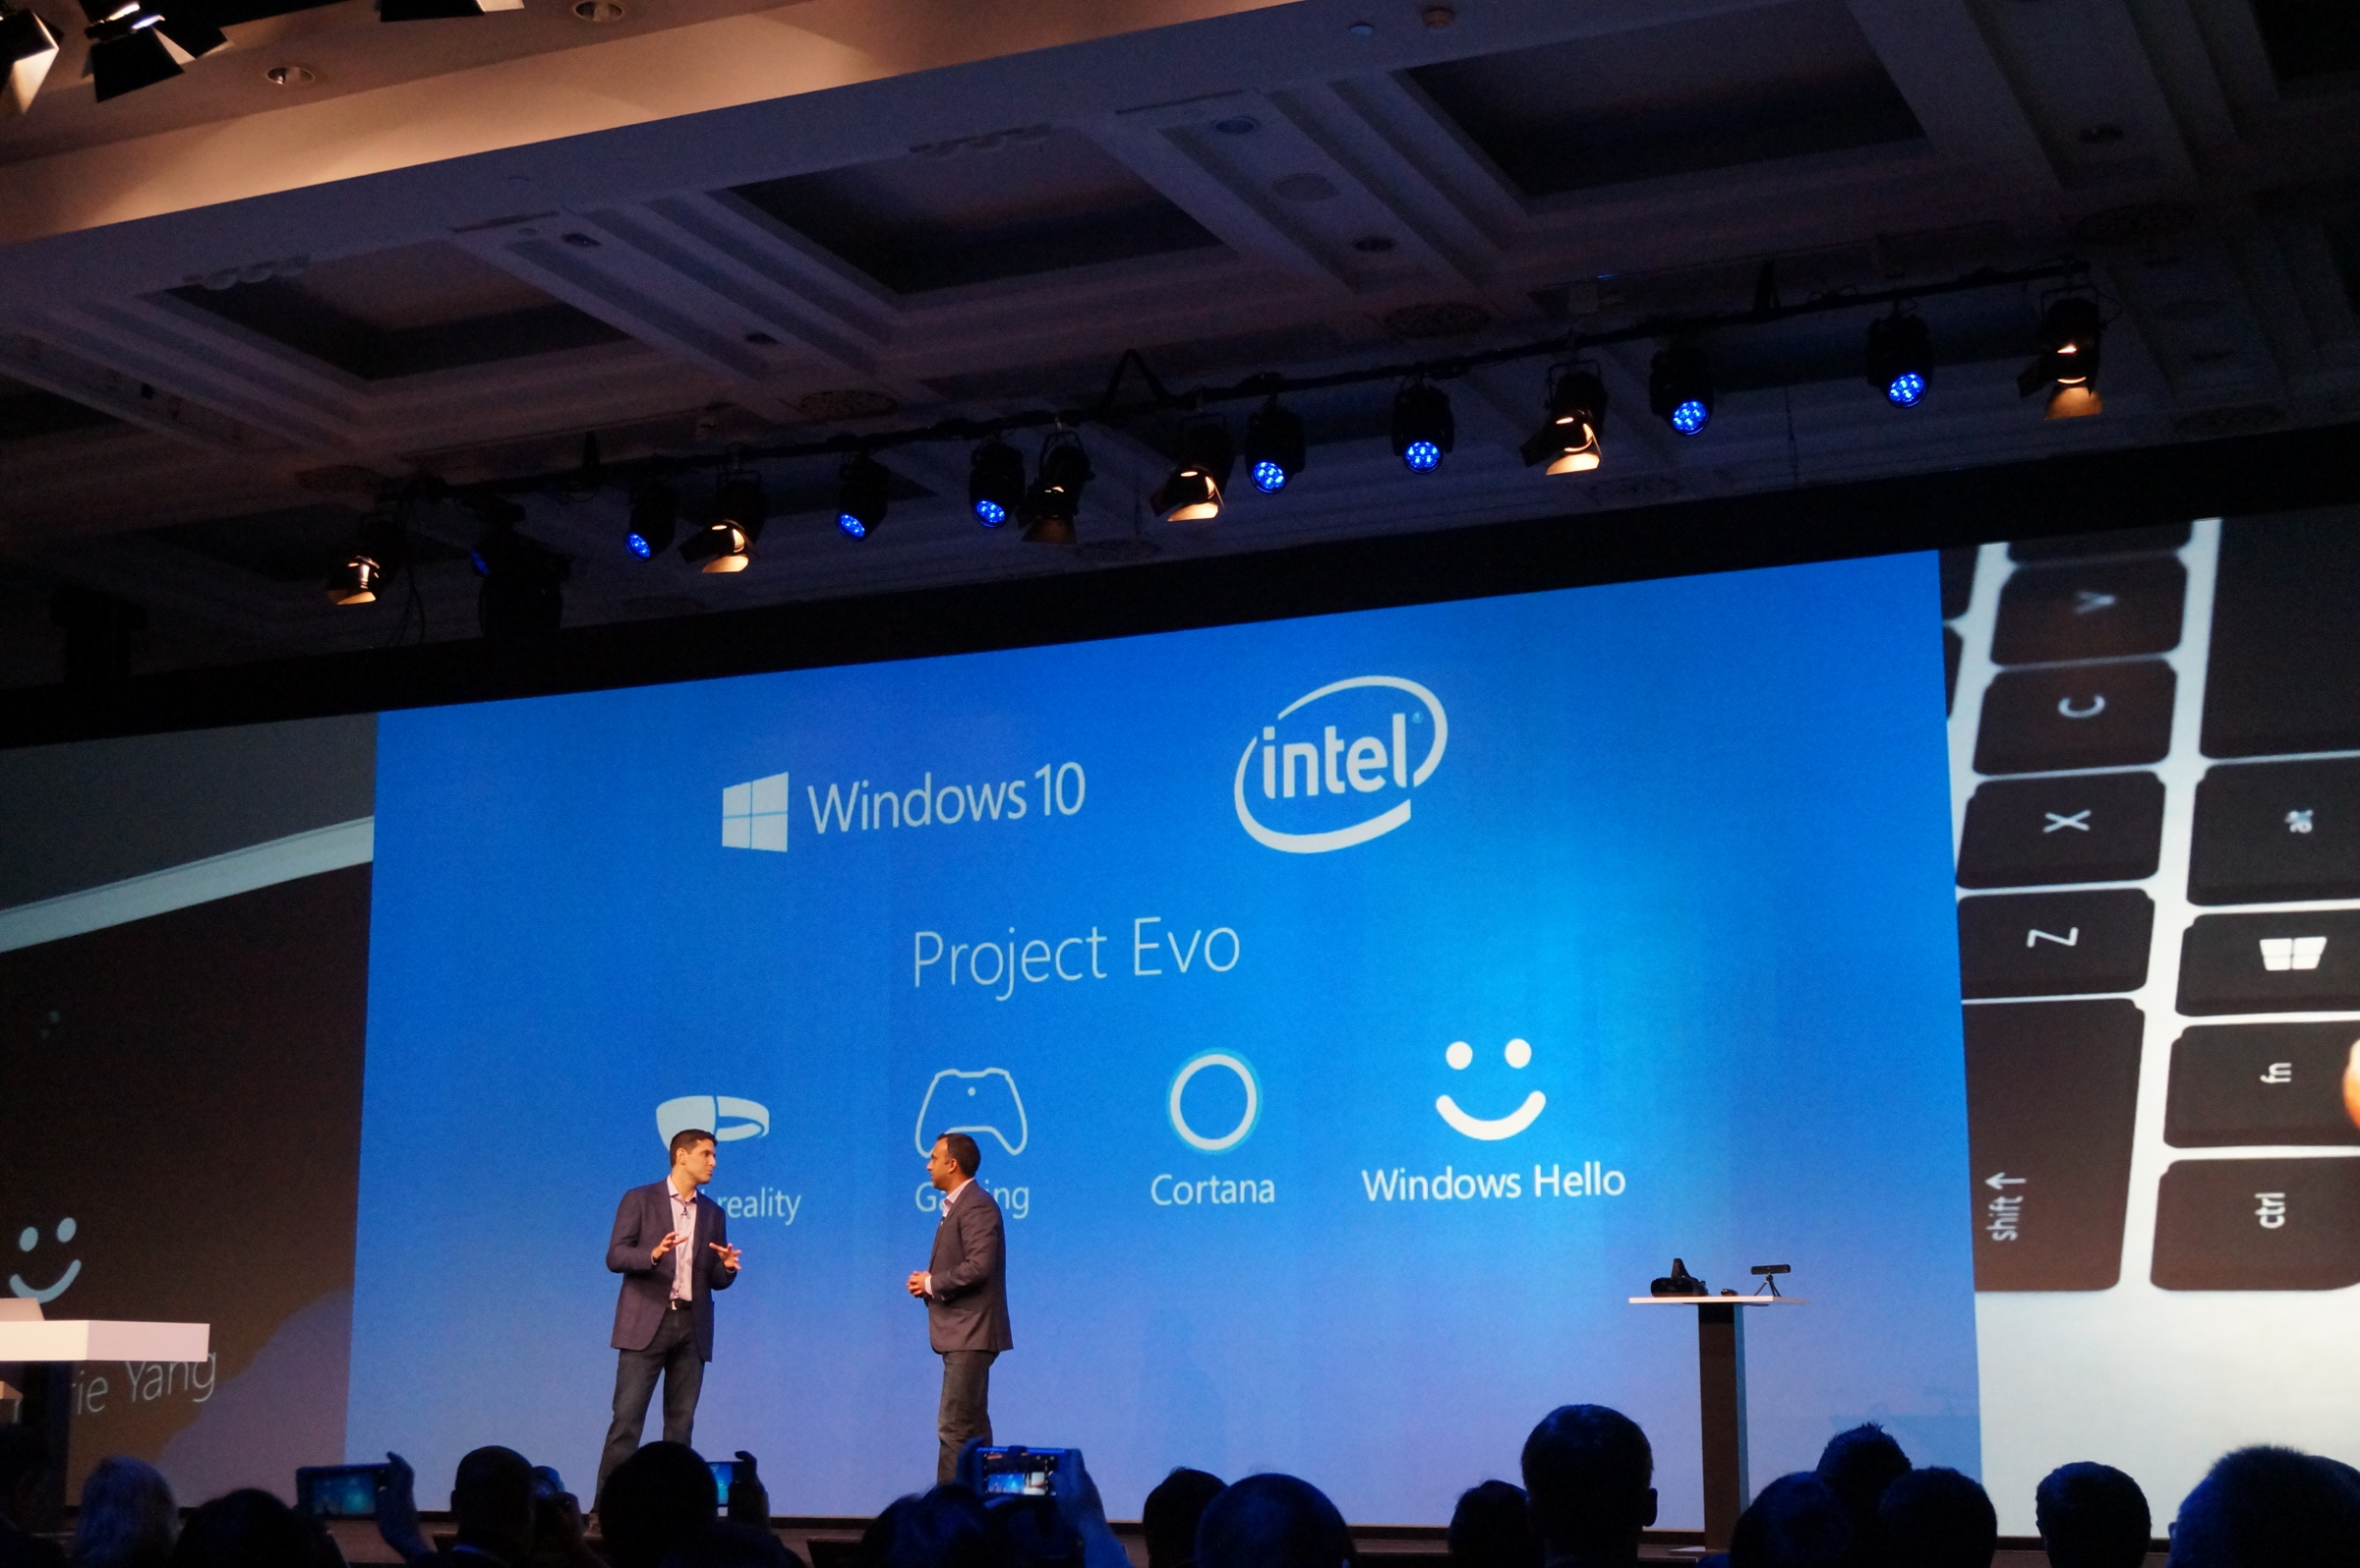 Microsoft-Intle-Project-Evo-Items-WinHEC-2016-2